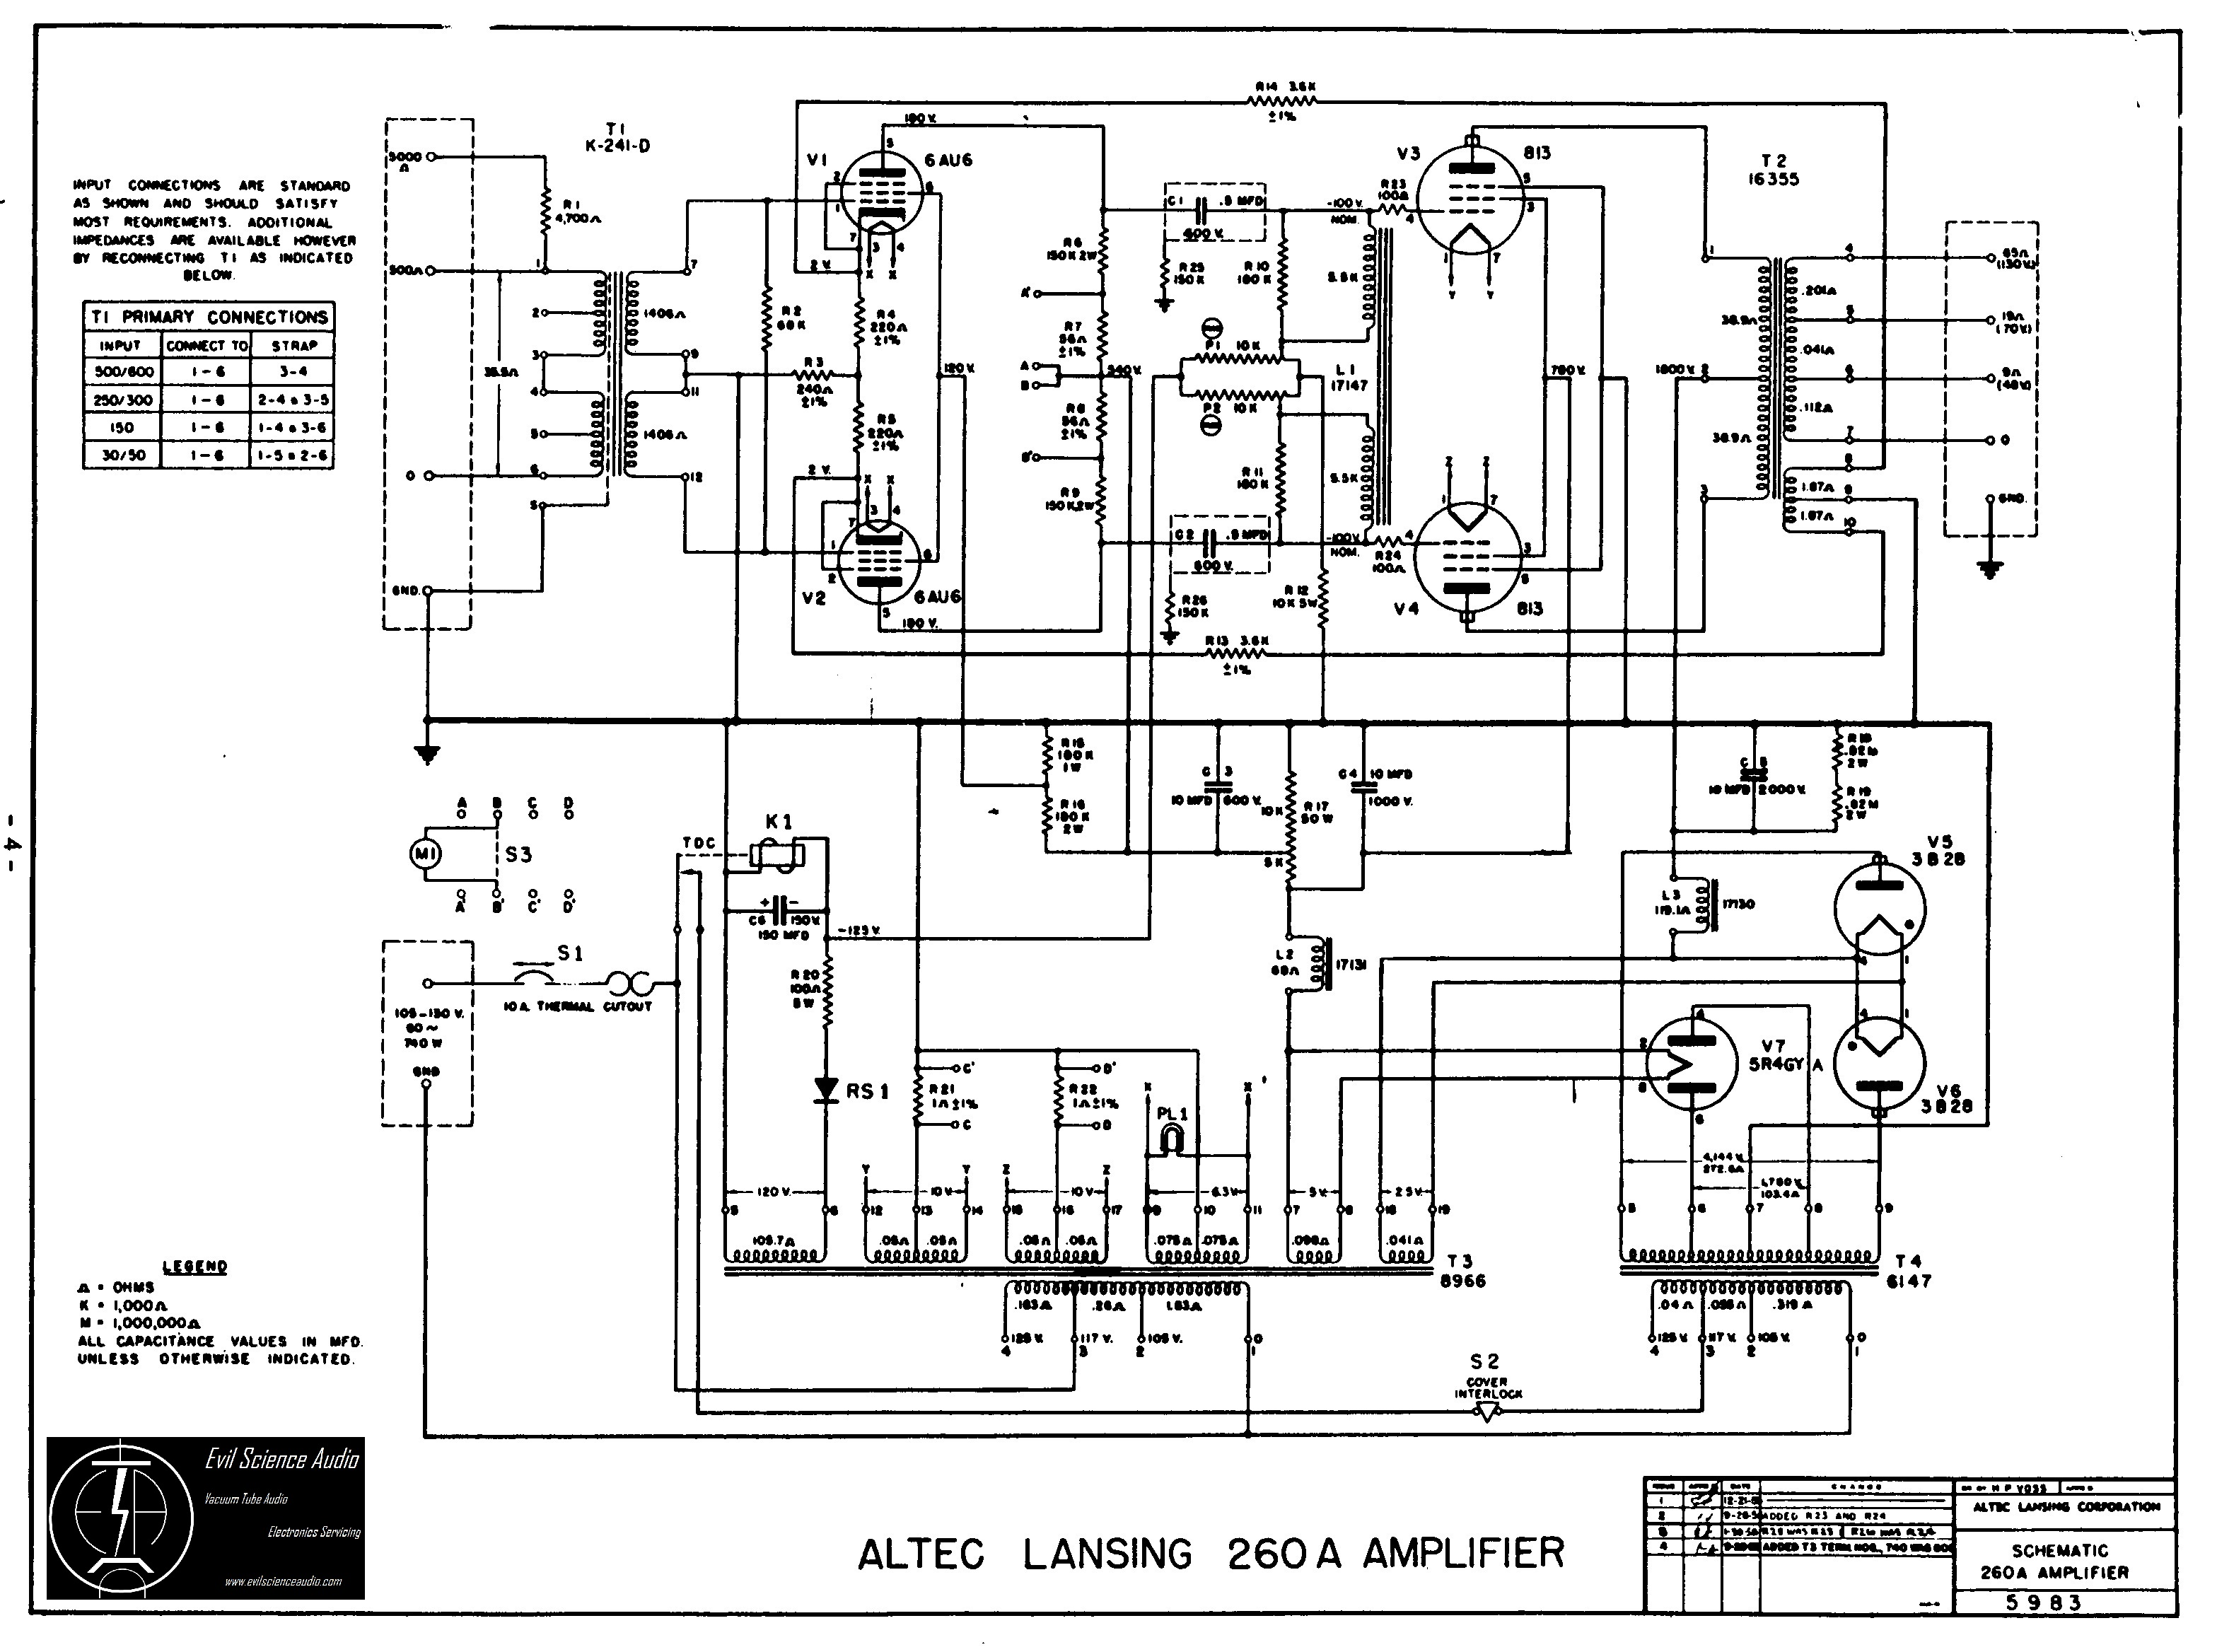 [DIAGRAM_5UK]  8ED1688 Altec Lansing 251 Wiring Diagram | Manual Book and Wiring Schematic | Altec Lansing 251 Wiring Diagram |  | Manual Book and Wiring Schematic